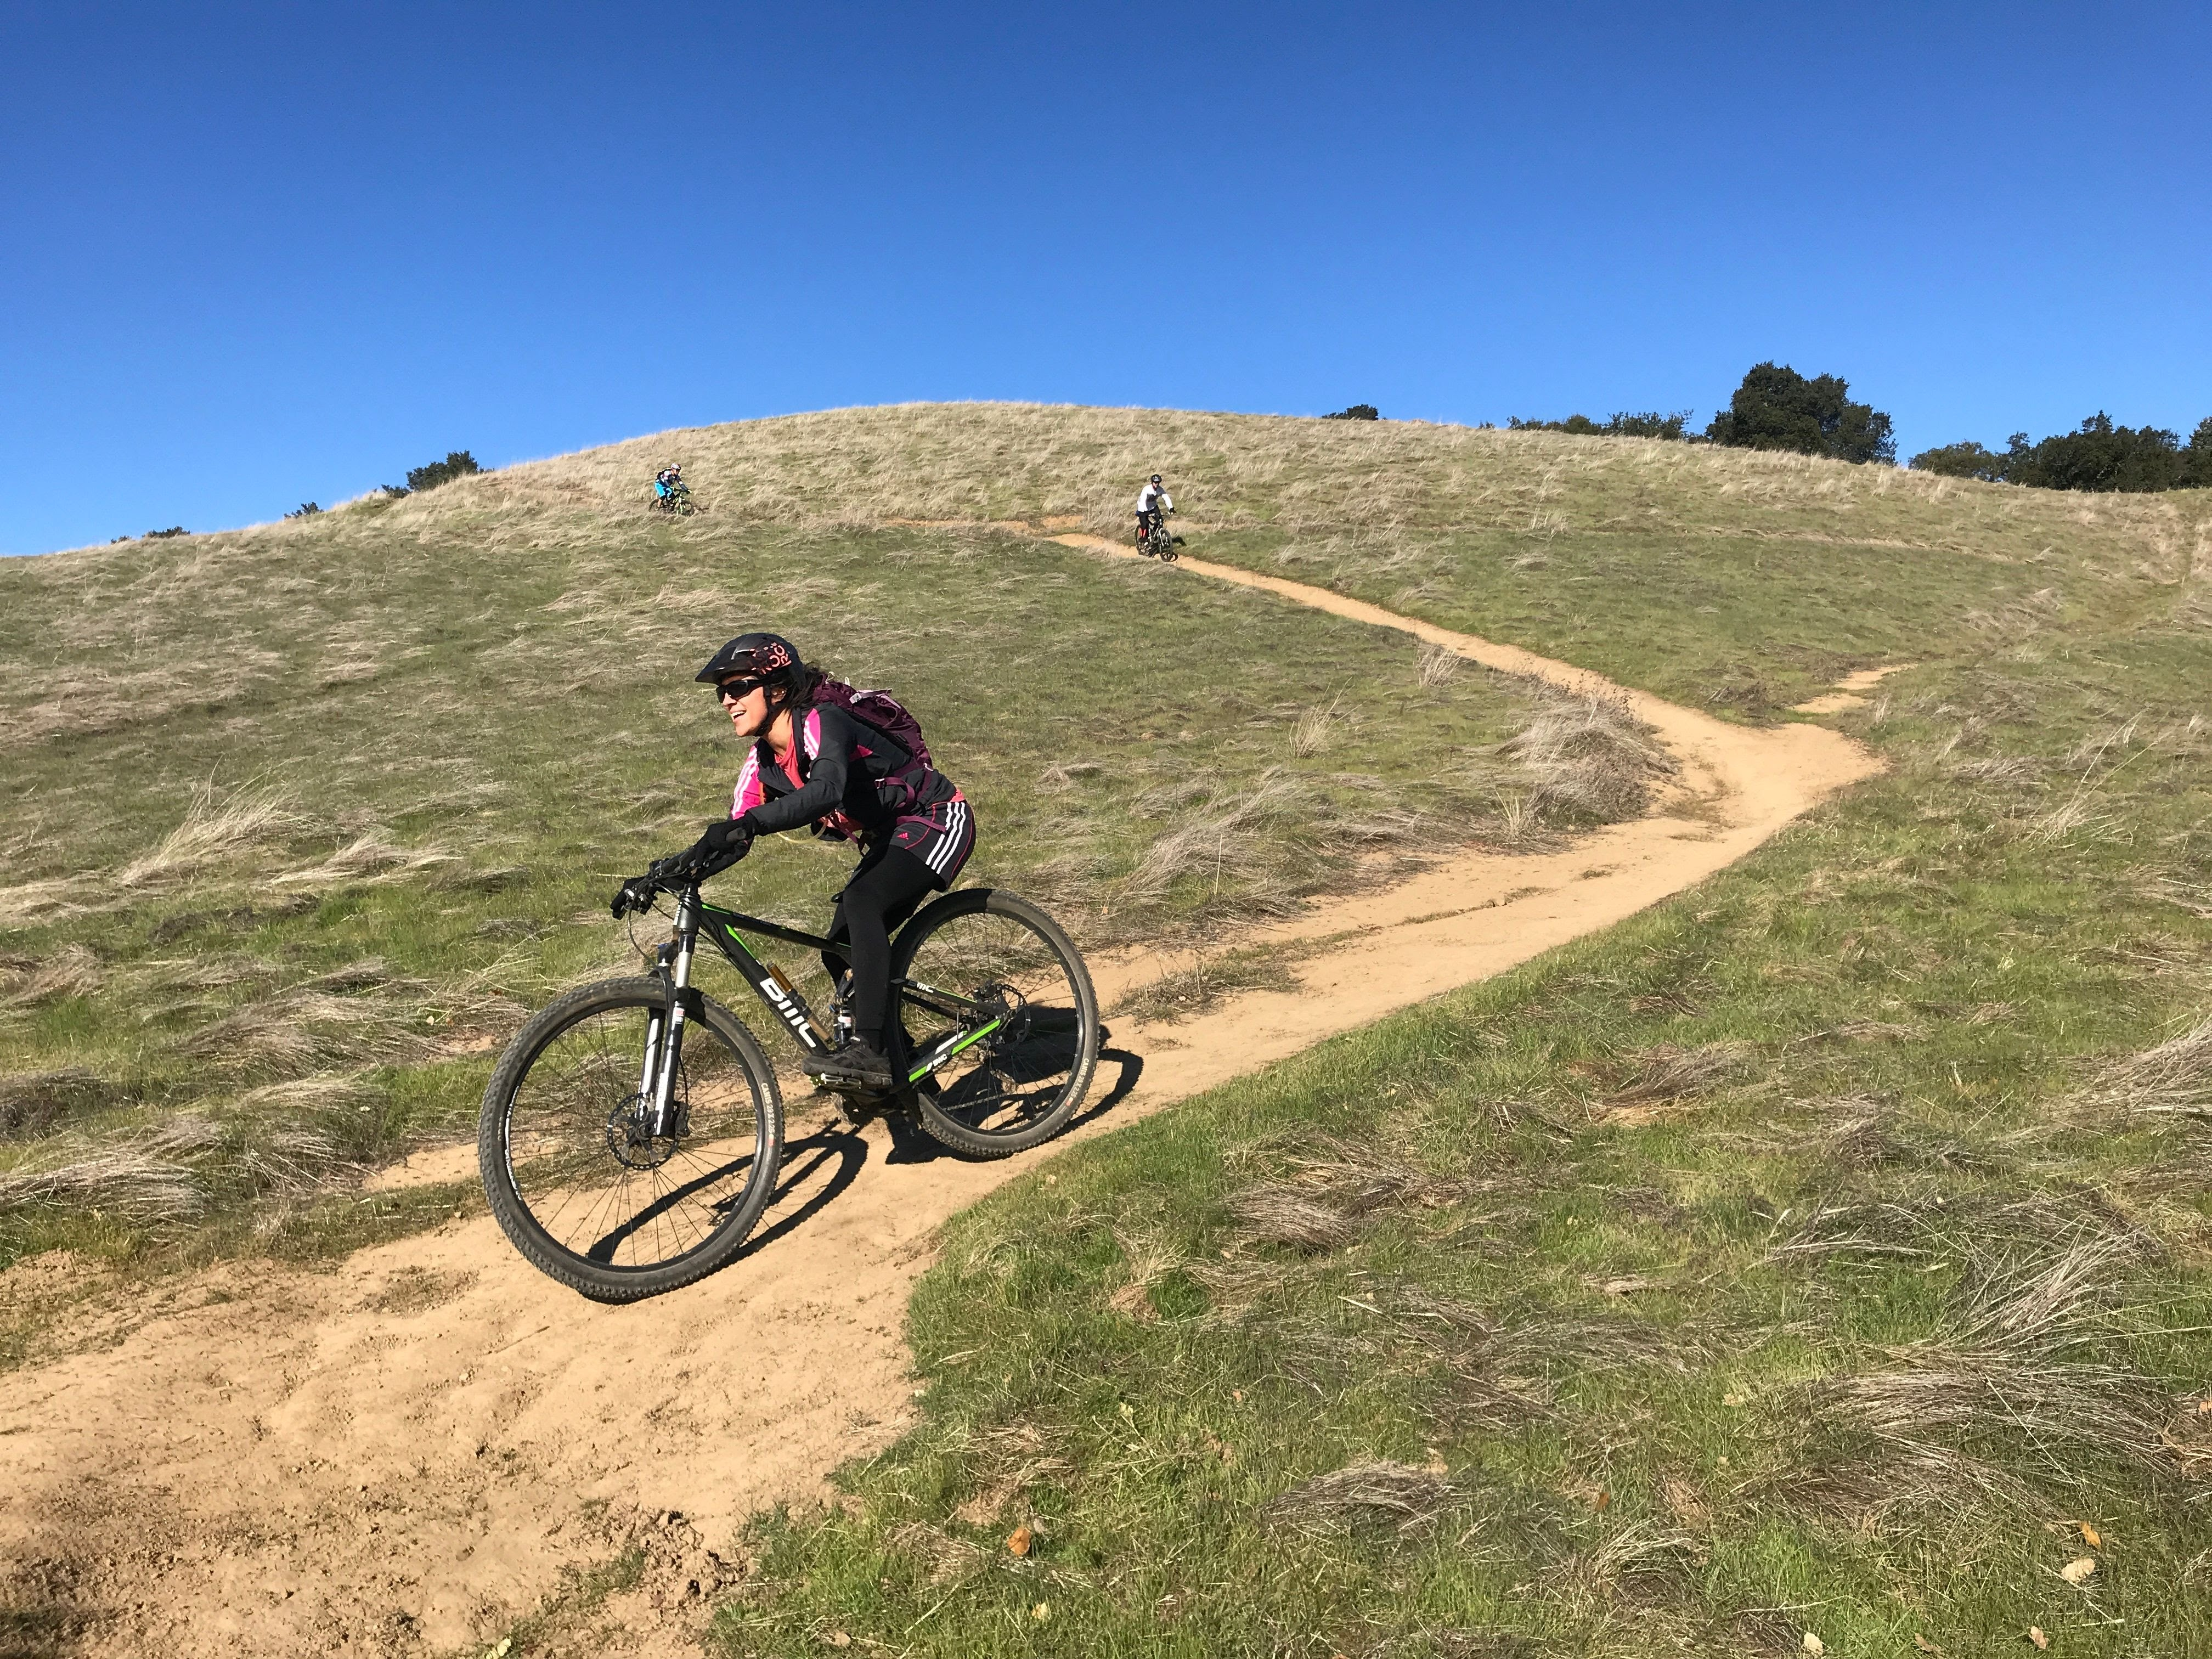 Single track trail users